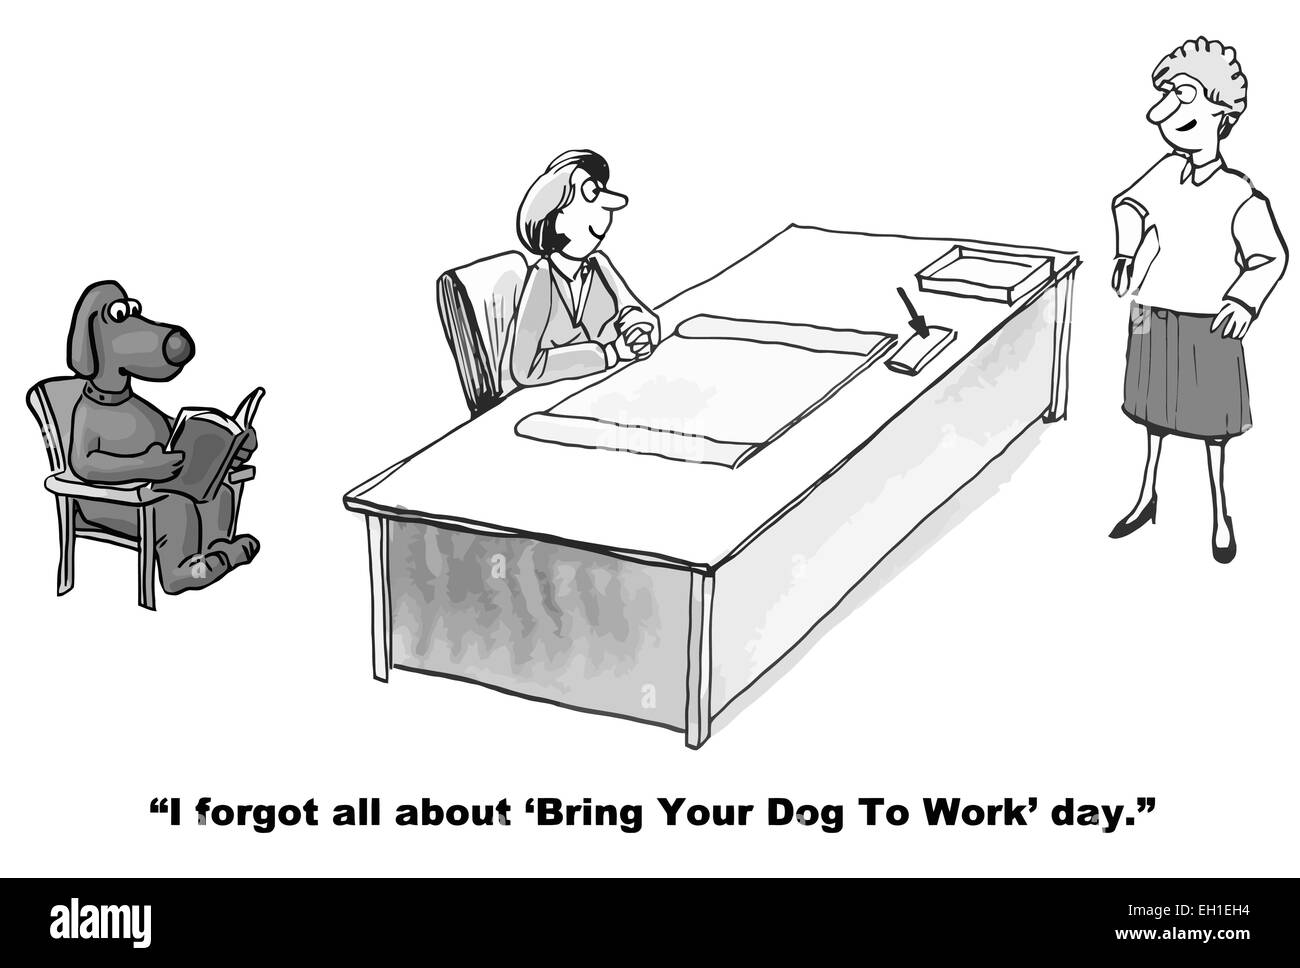 Awe Inspiring Cartoon Of Businesswoman At Desk With Her Dog Coworker Says Download Free Architecture Designs Scobabritishbridgeorg